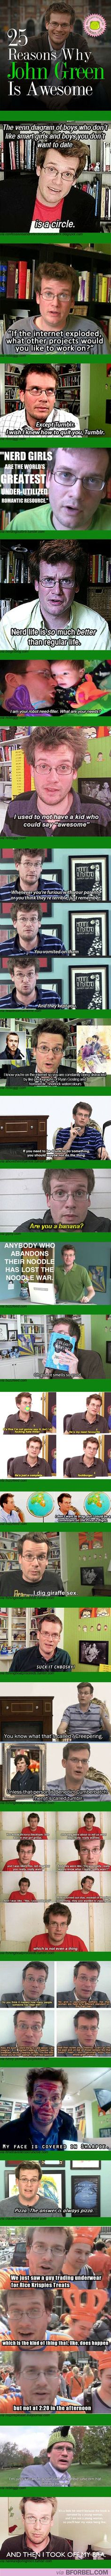 John Green everyone. I don't know where to save this to so umma just put it in the memes category